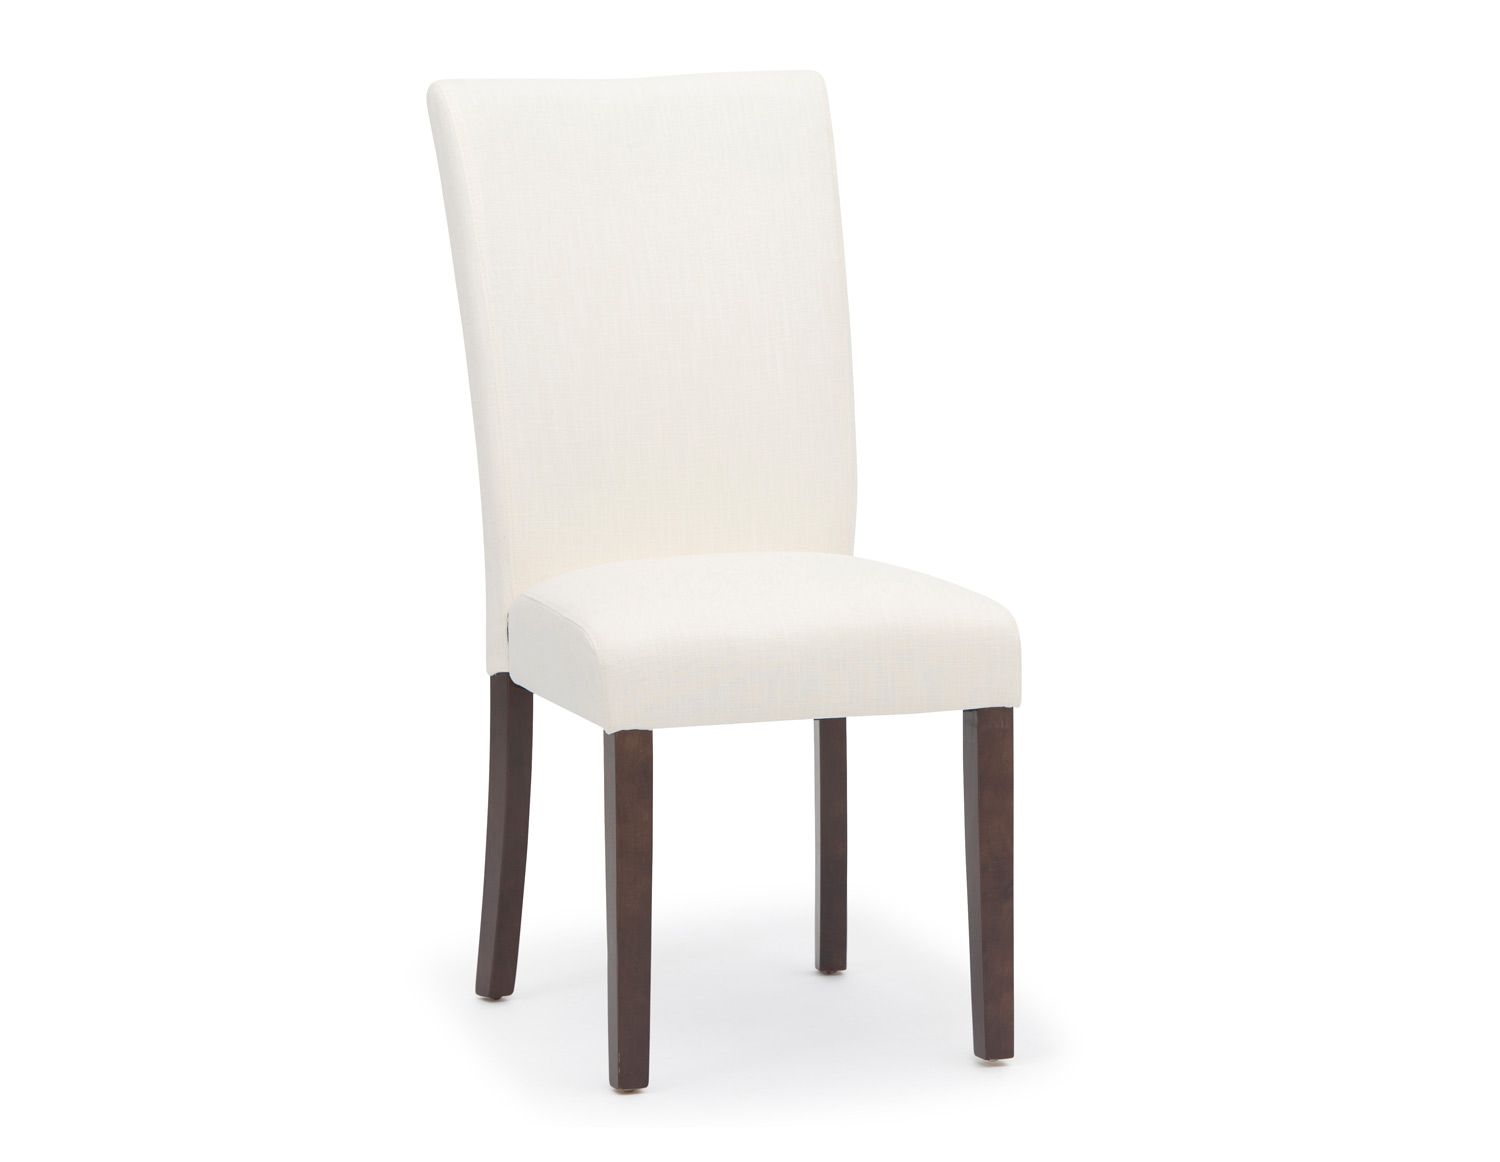 Structube Chairs Kenya Dining Chair Via Structube 99 For The Home